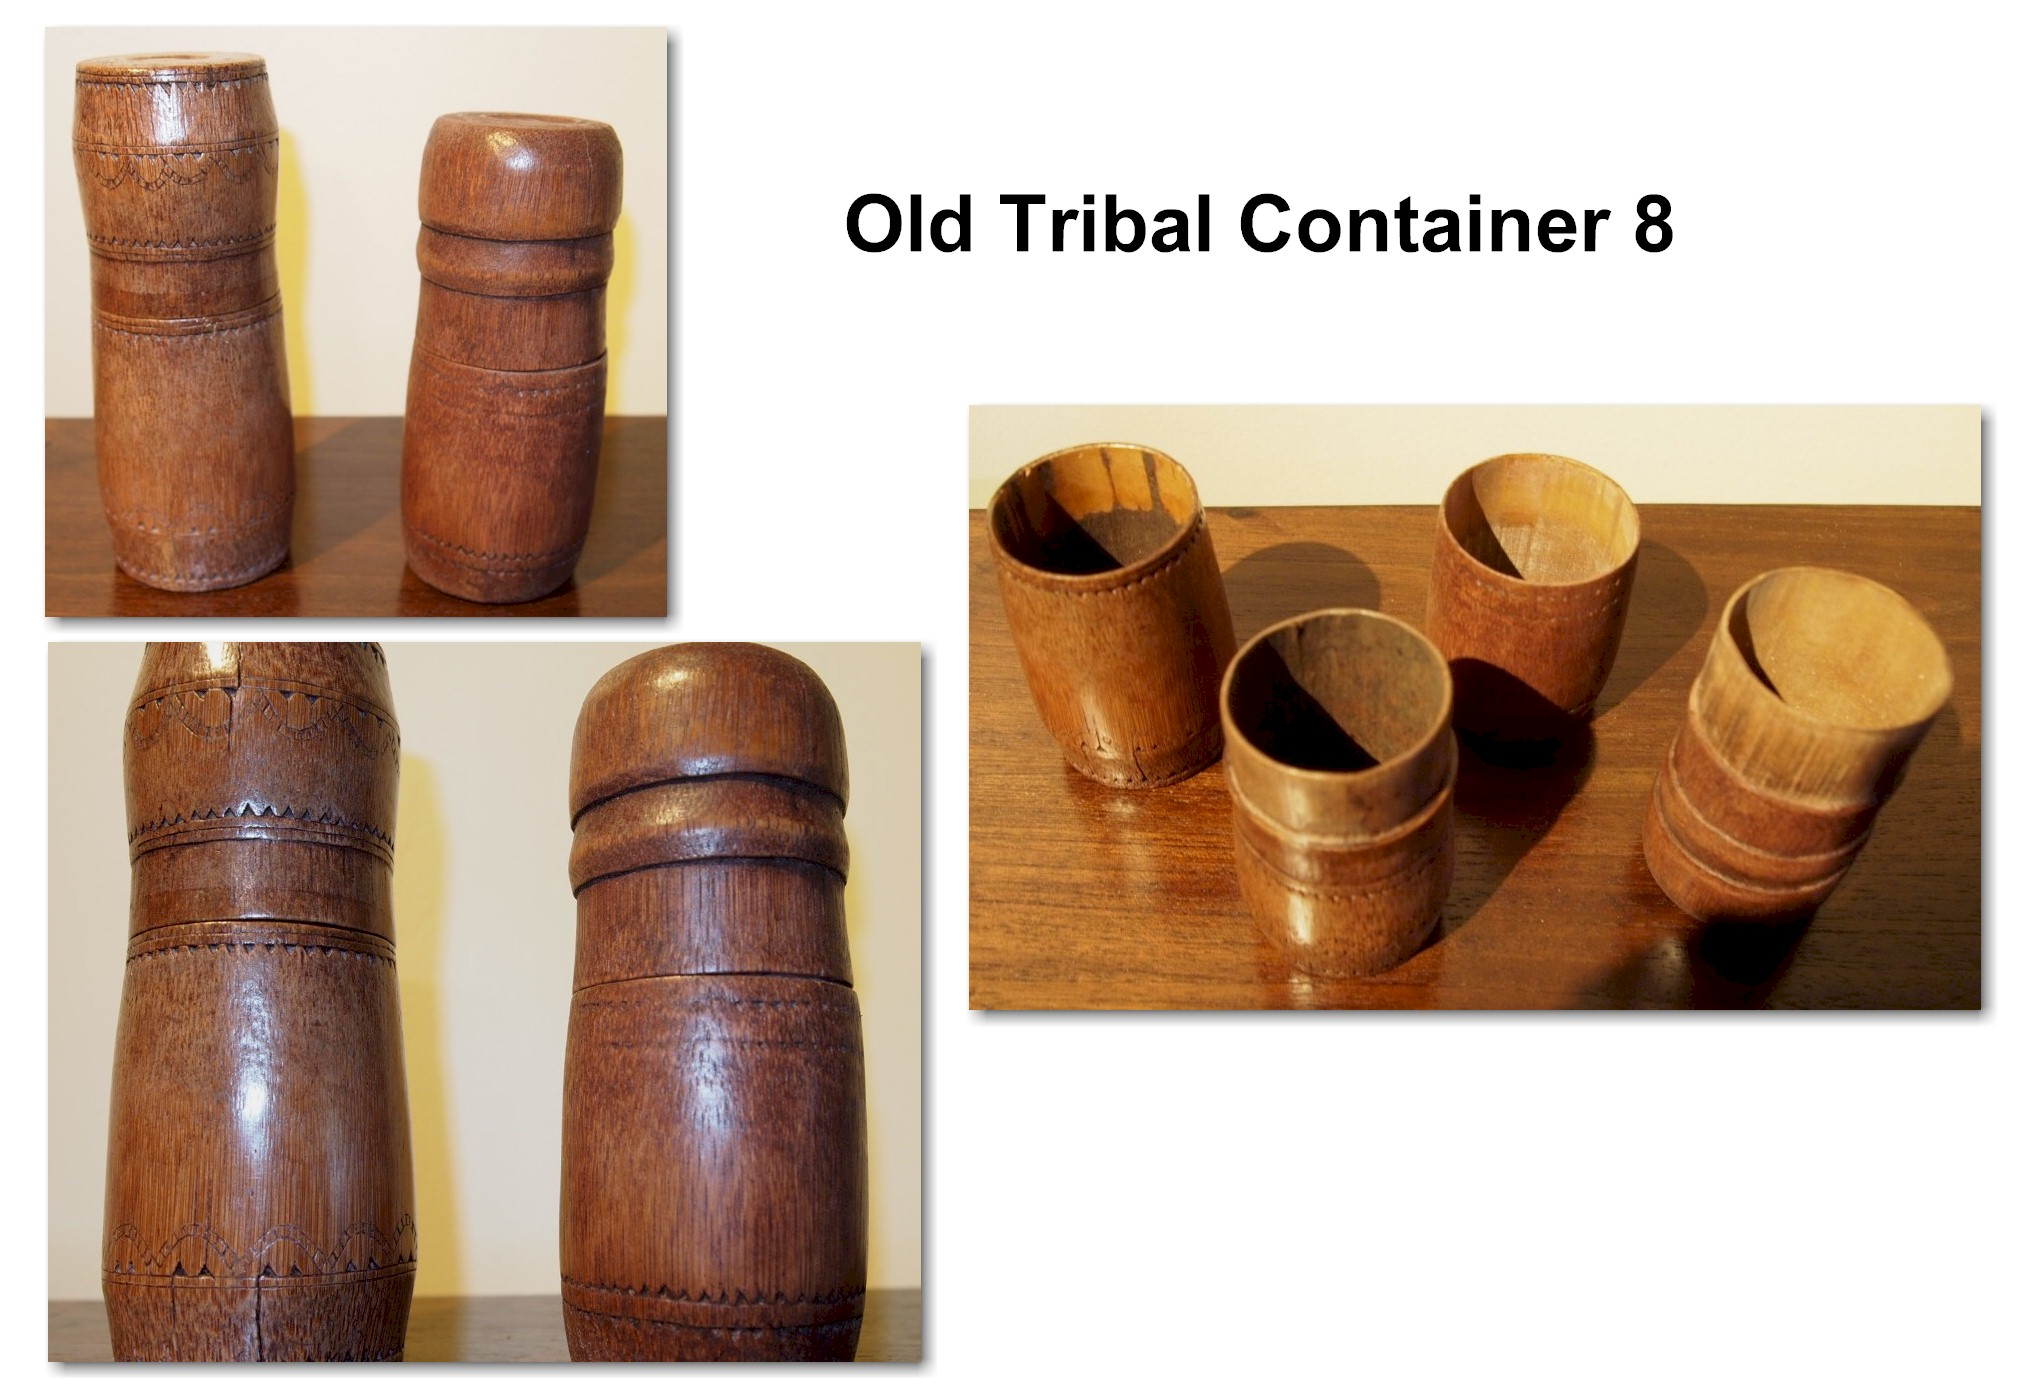 Old Tribal Container 8